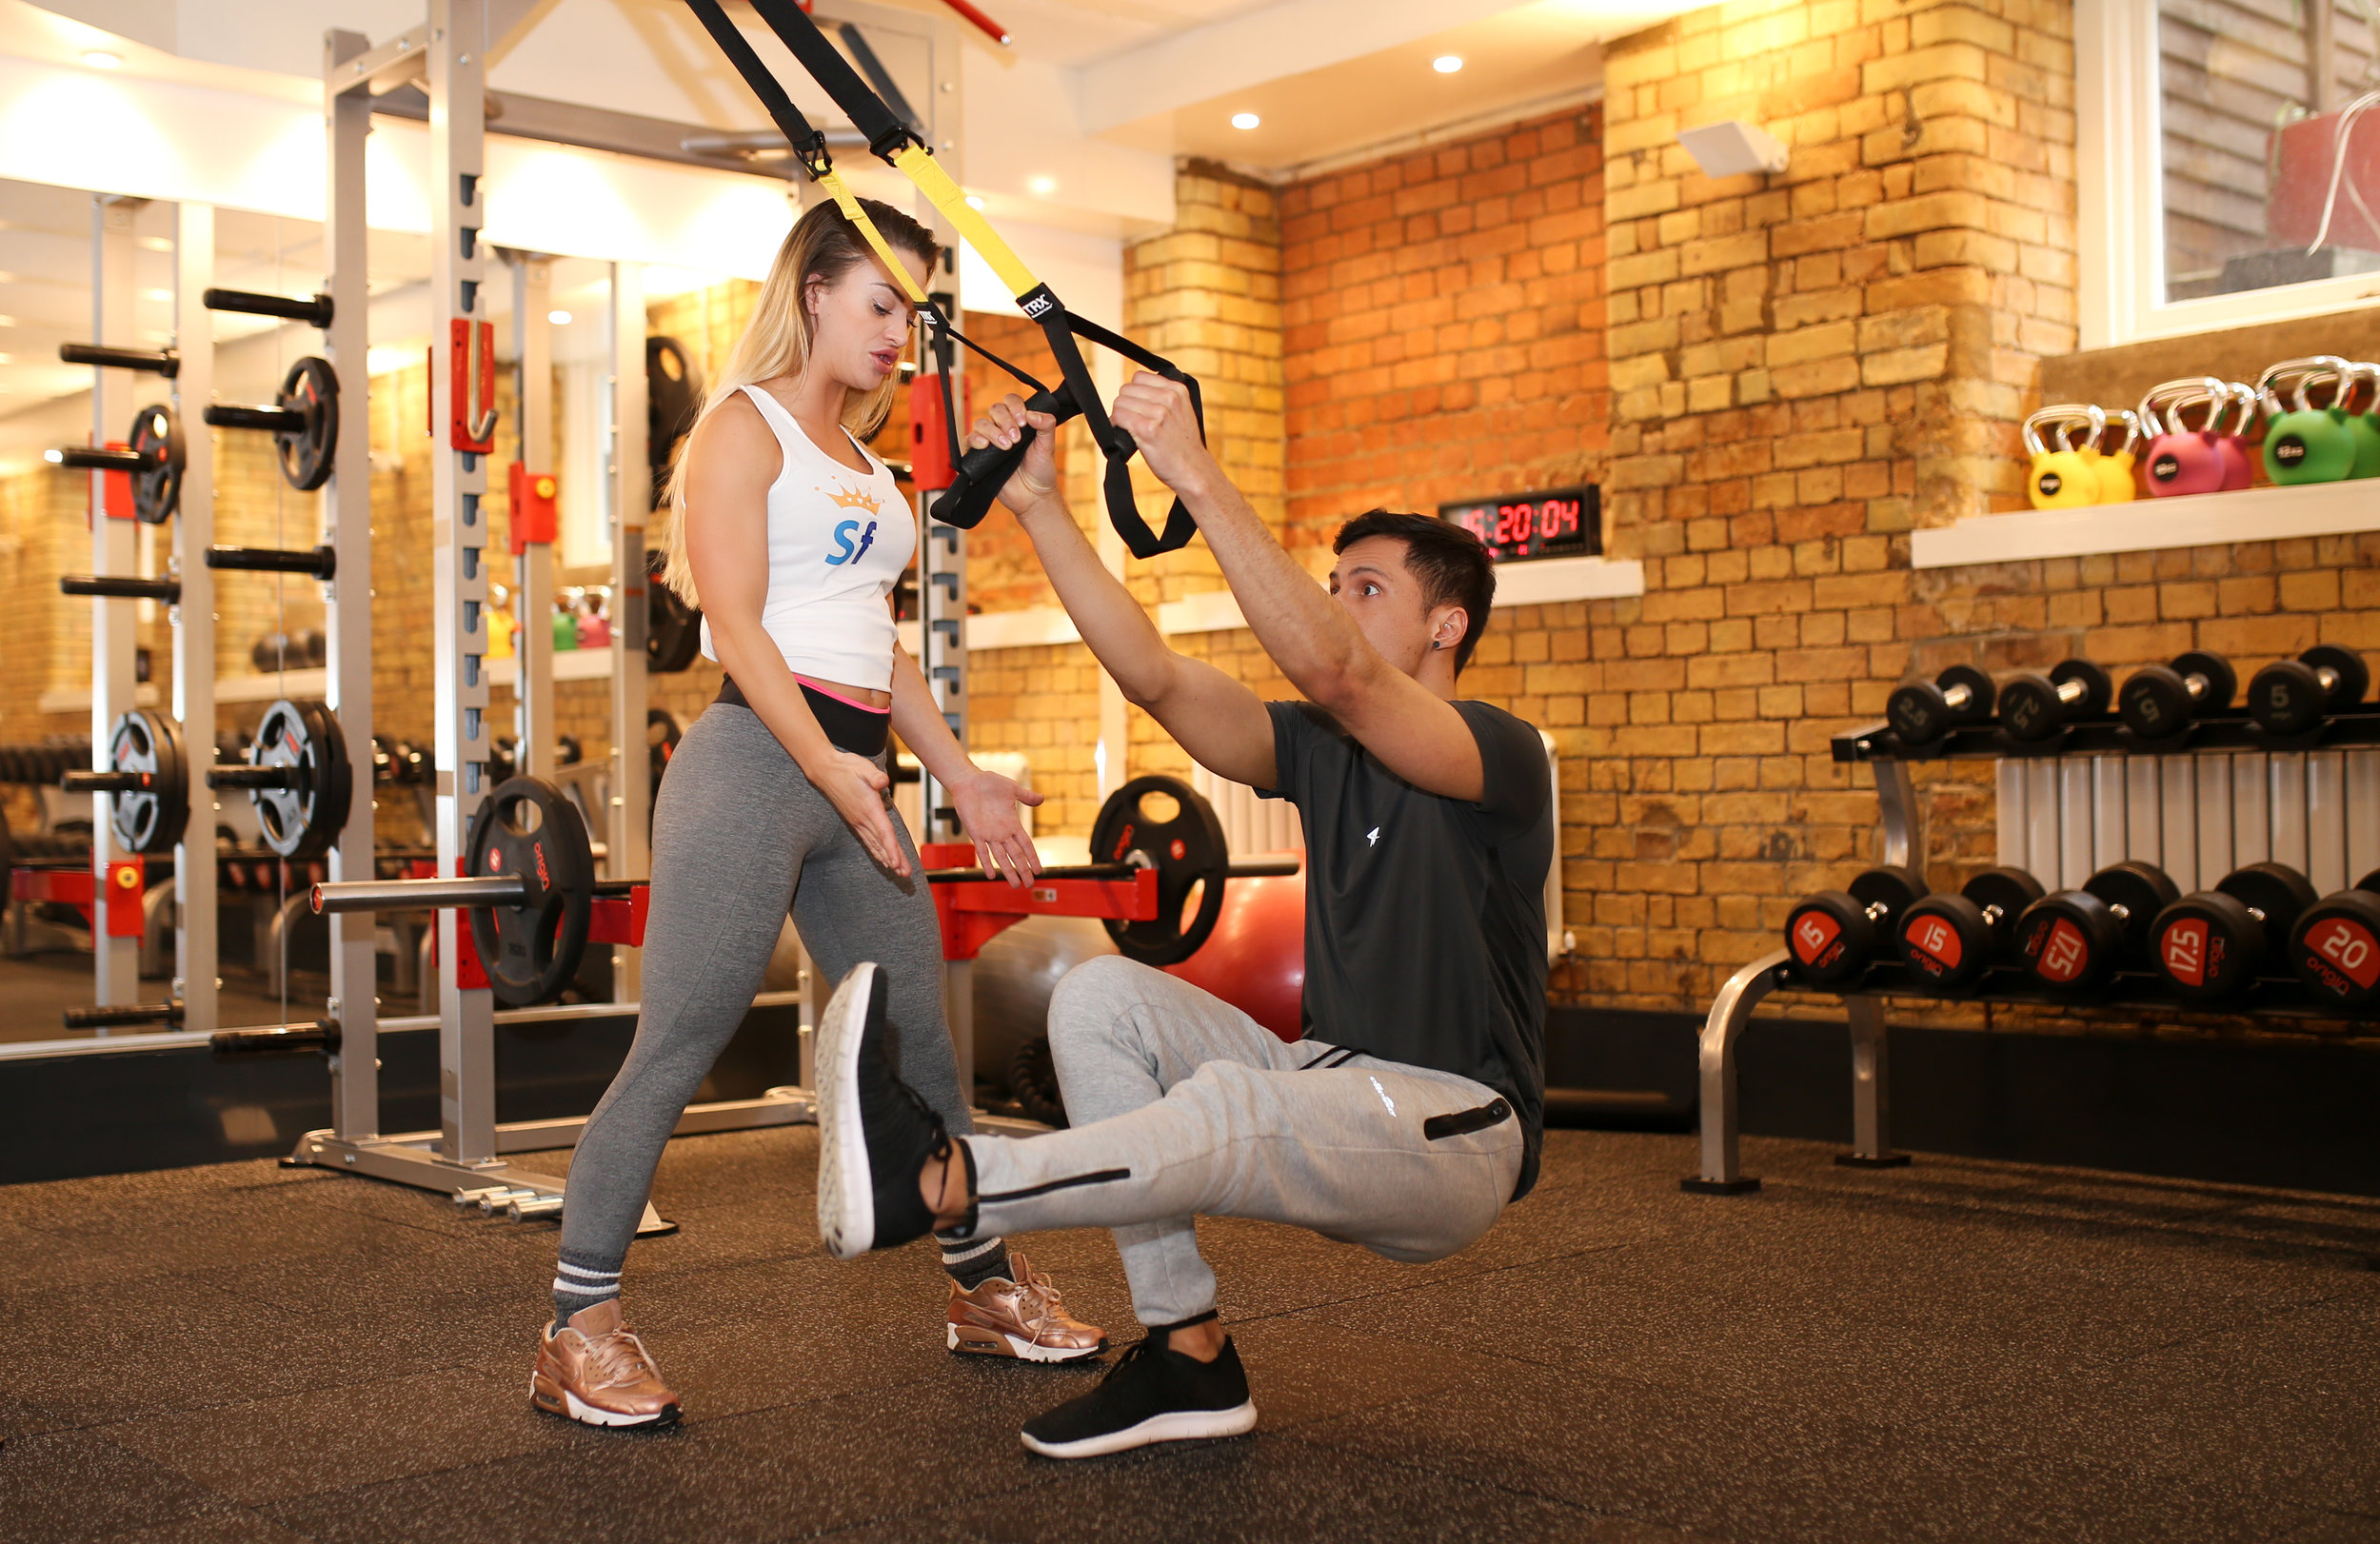 scandinavian fitness, personal training, london, notting hill, fitness, training